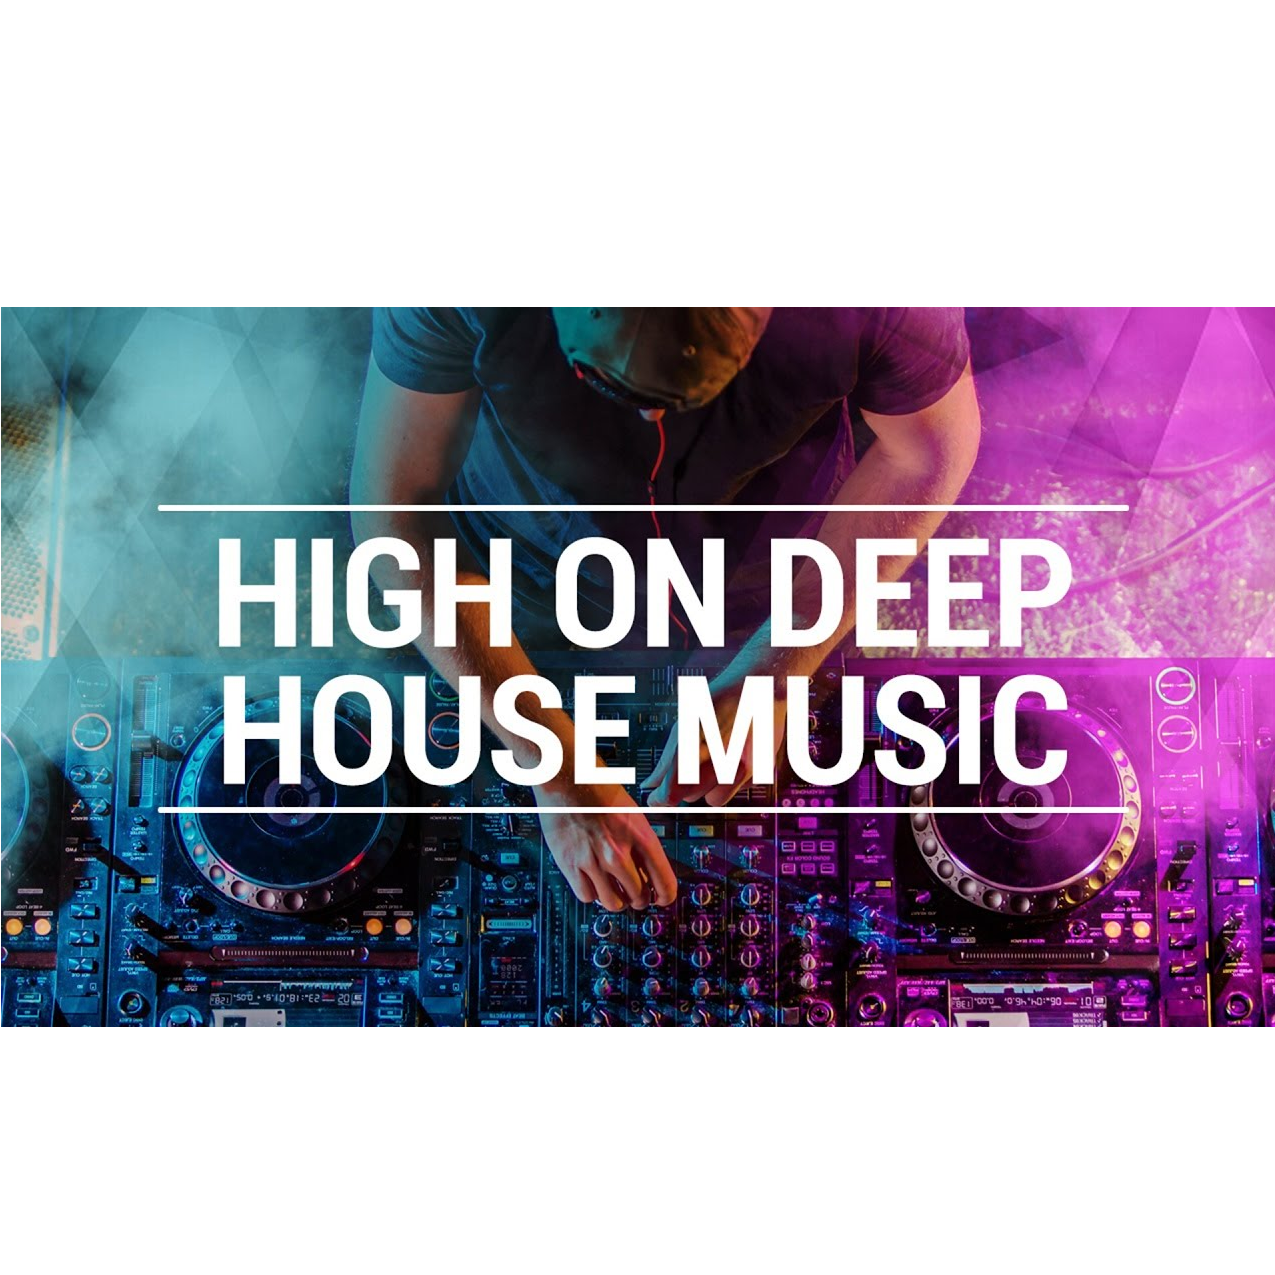 Deep House Music - Bucharest - Romania